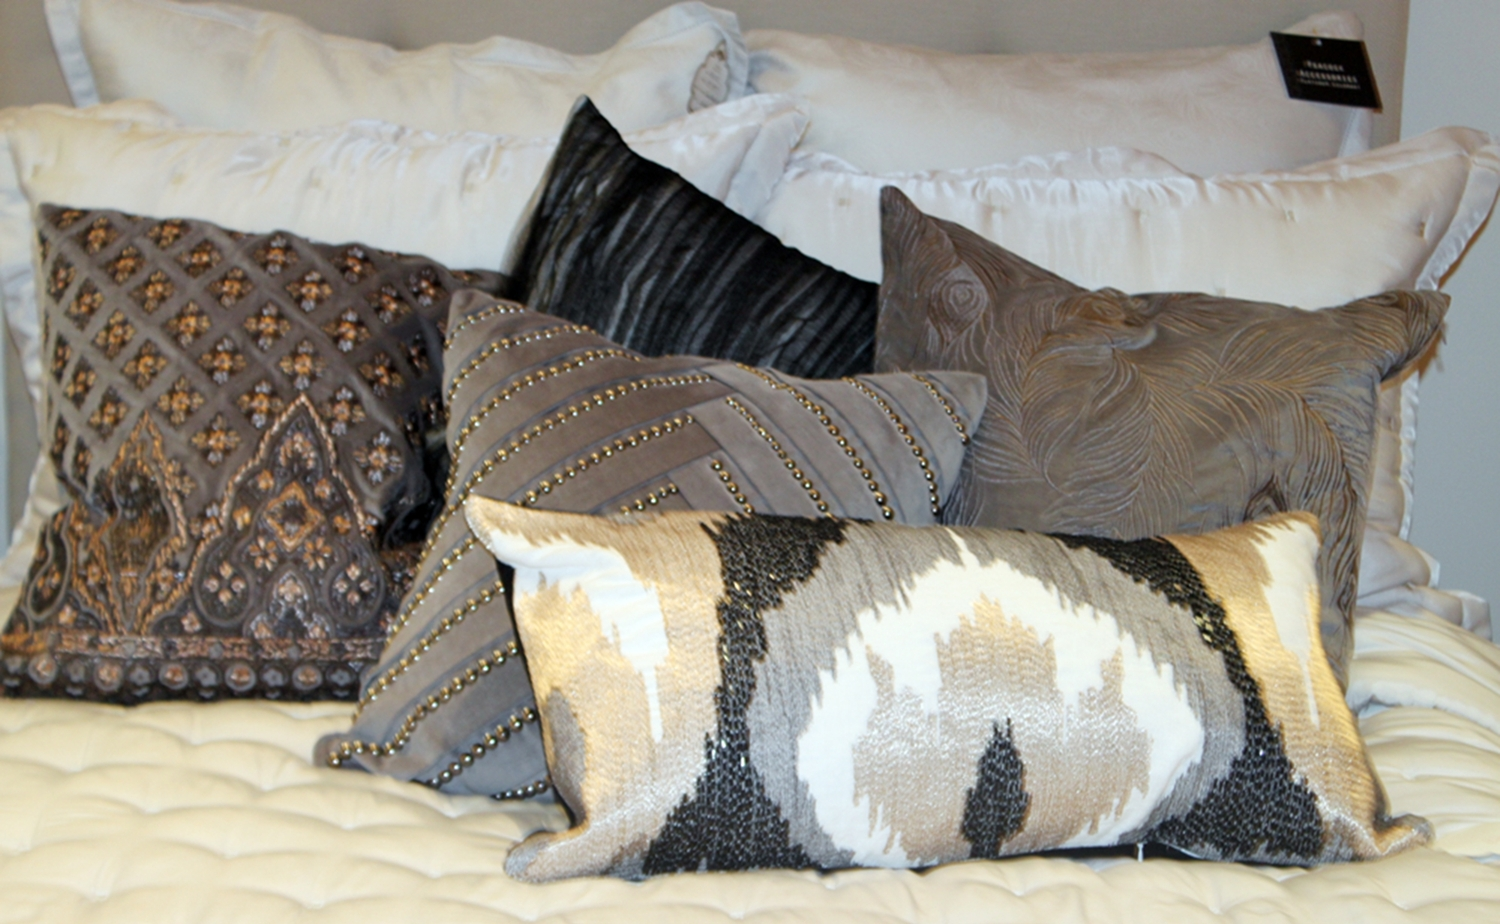 nanette lepore launches home collection  nanette lepore villa  - nanette lepore launches home collection – nanette lepore villa